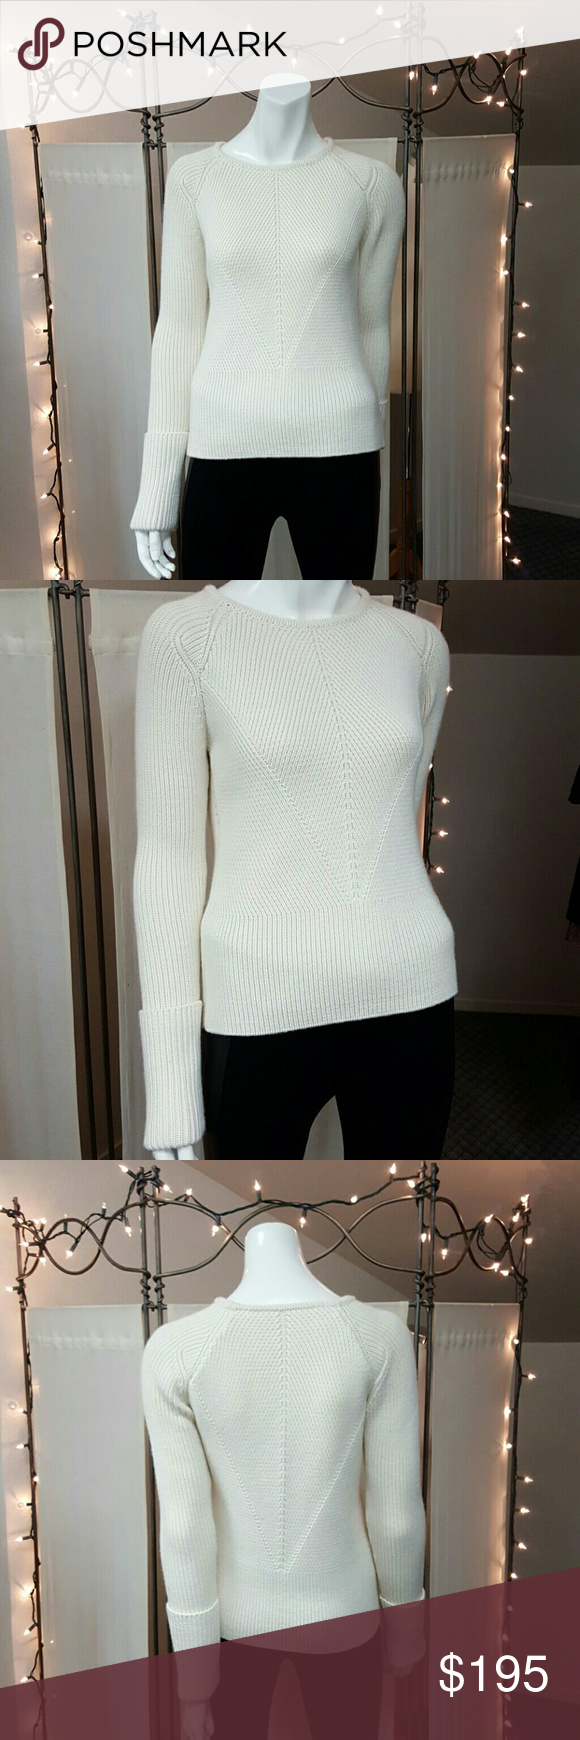 """Derek Lam...10 Crosby Amazing Knit Sweater...measurements laying flat... length 23"""",  chest 16"""" . This sweater has approximately 3-5 inches extra stretch. 10 Crosby Derek Lam Sweaters Crew & Scoop Necks"""